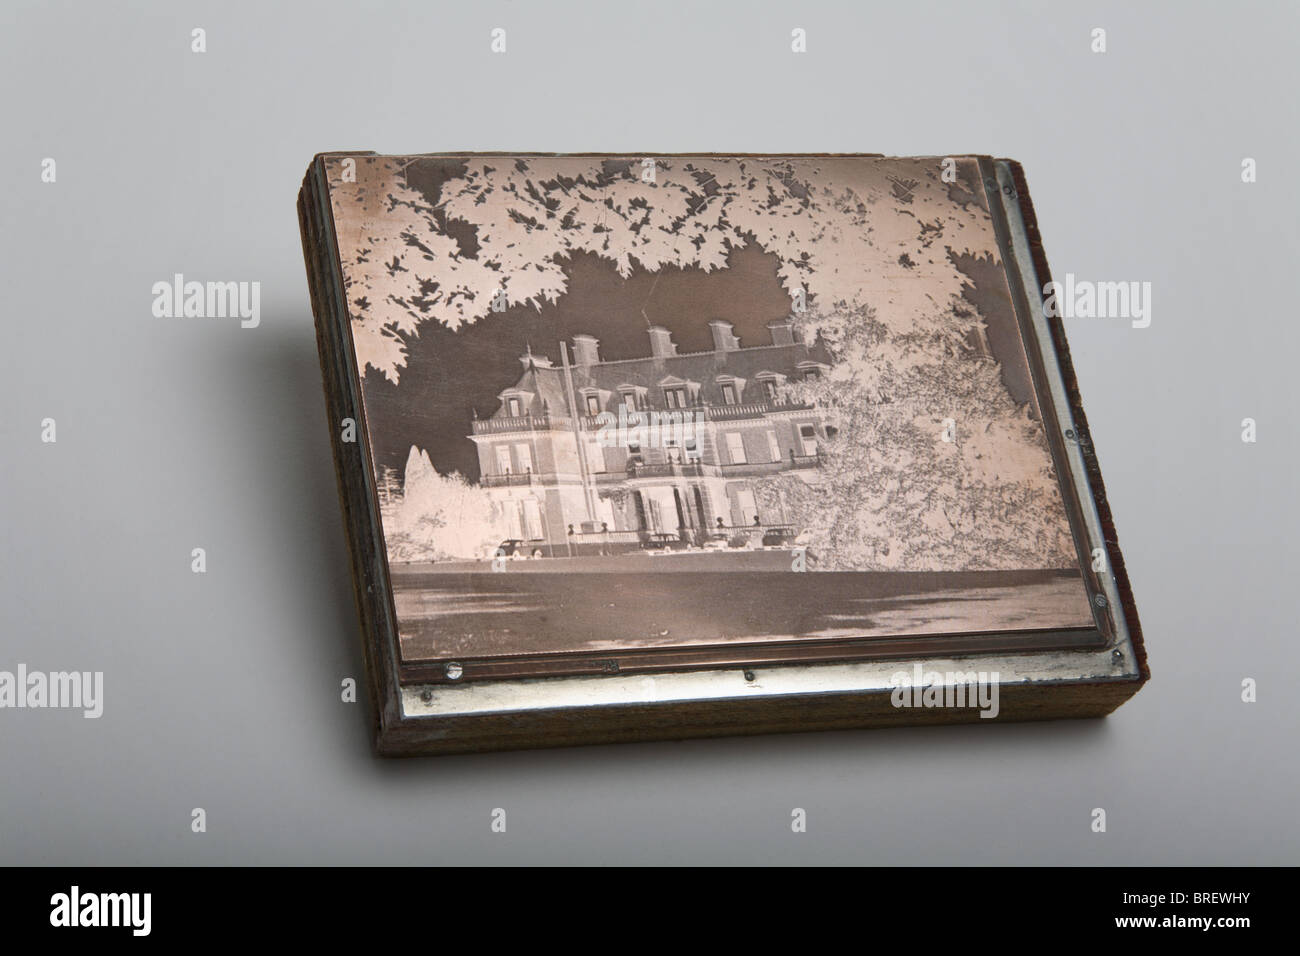 Letterpress block used to print a picture. - Stock Image